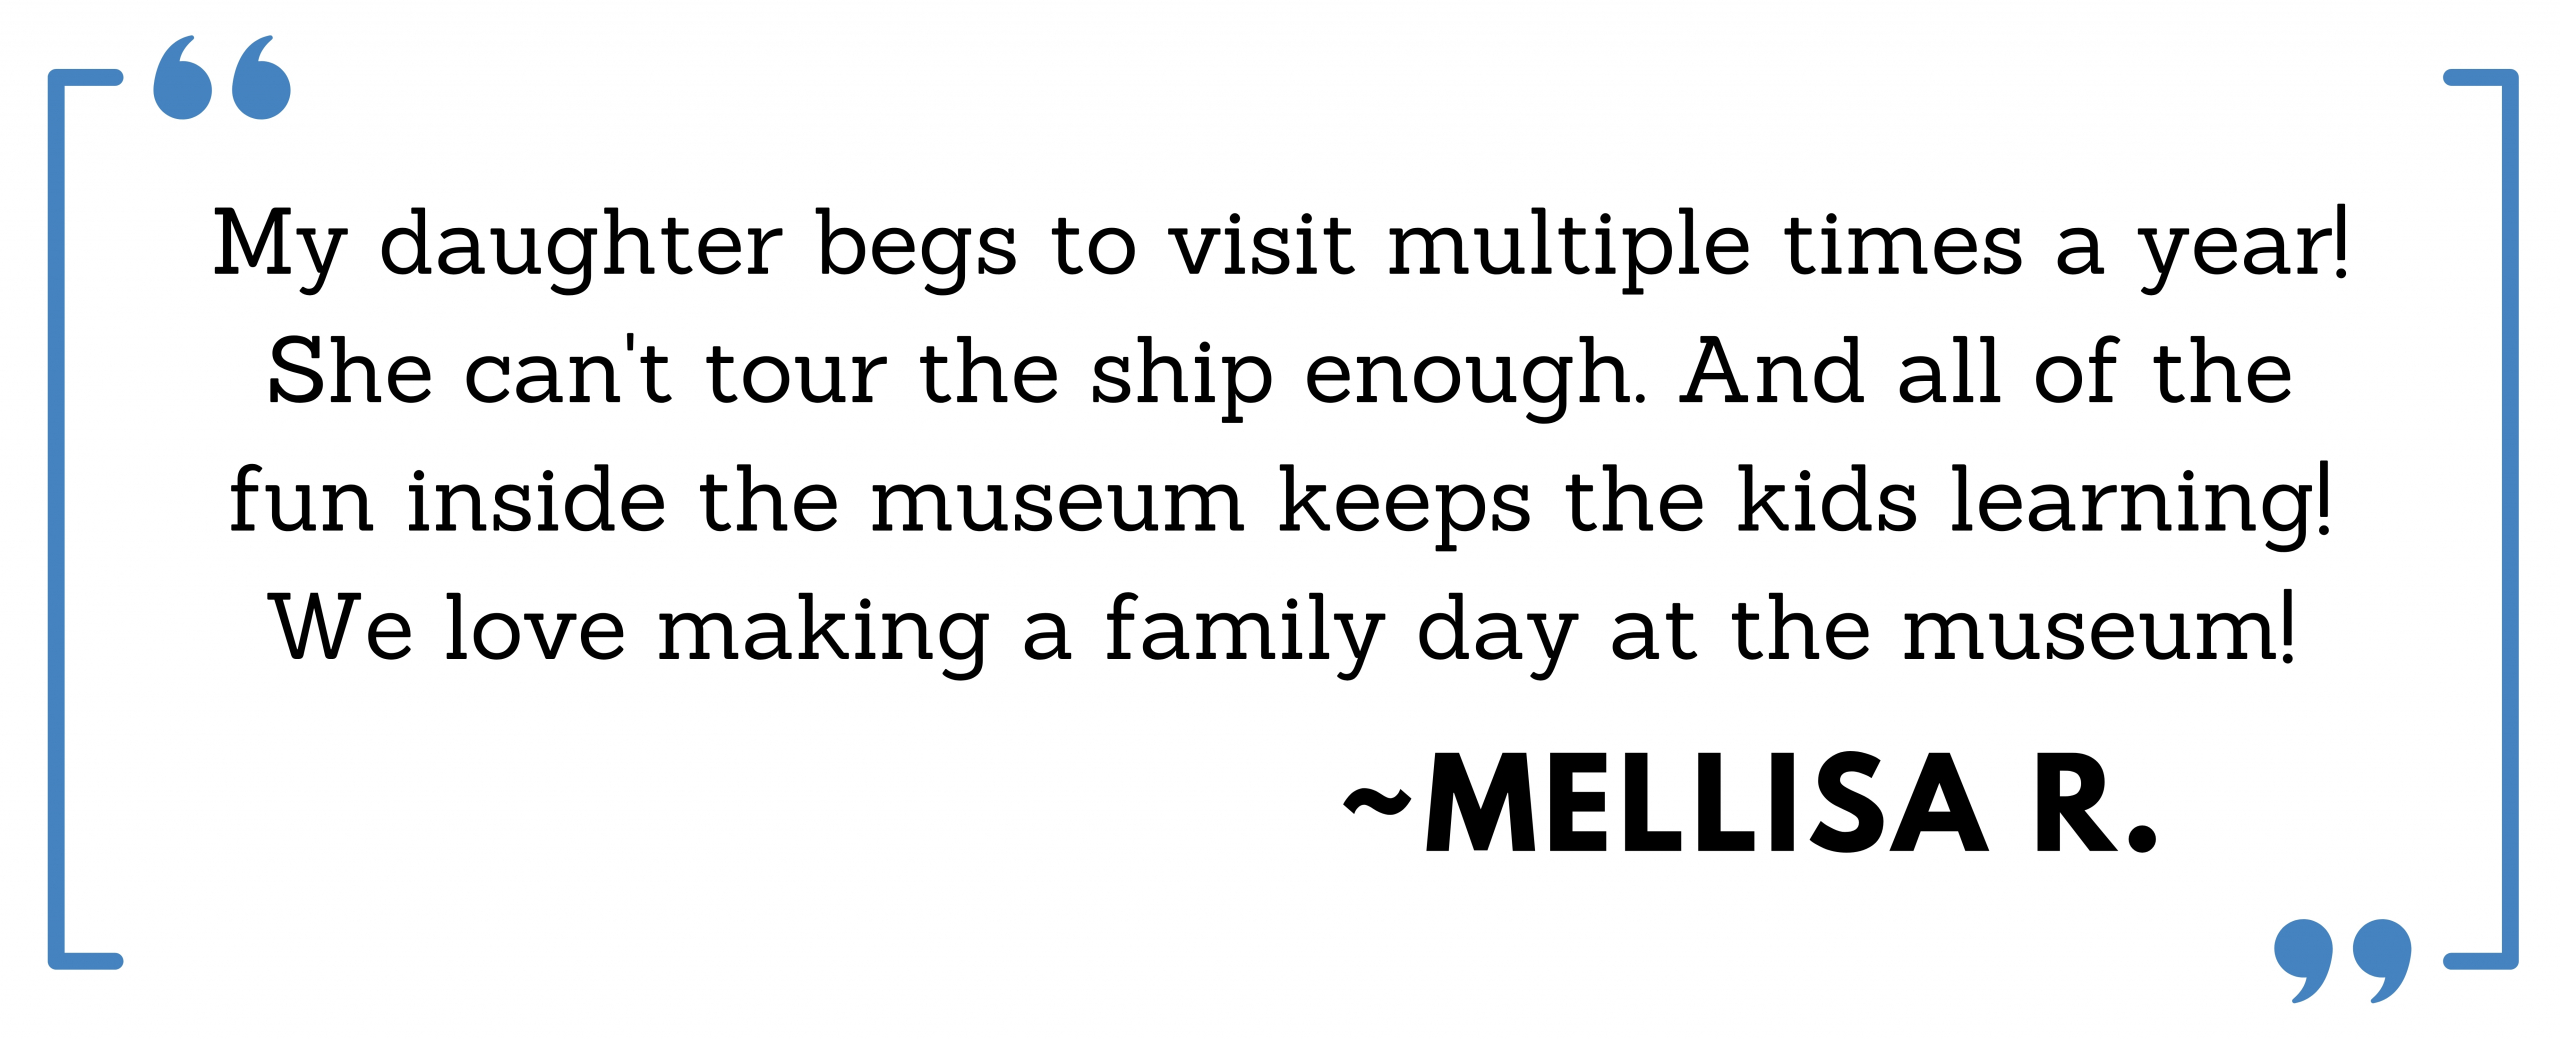 Review by Mellisa R explaining that the museum is fun for the whole family and that her daugther begs to visit